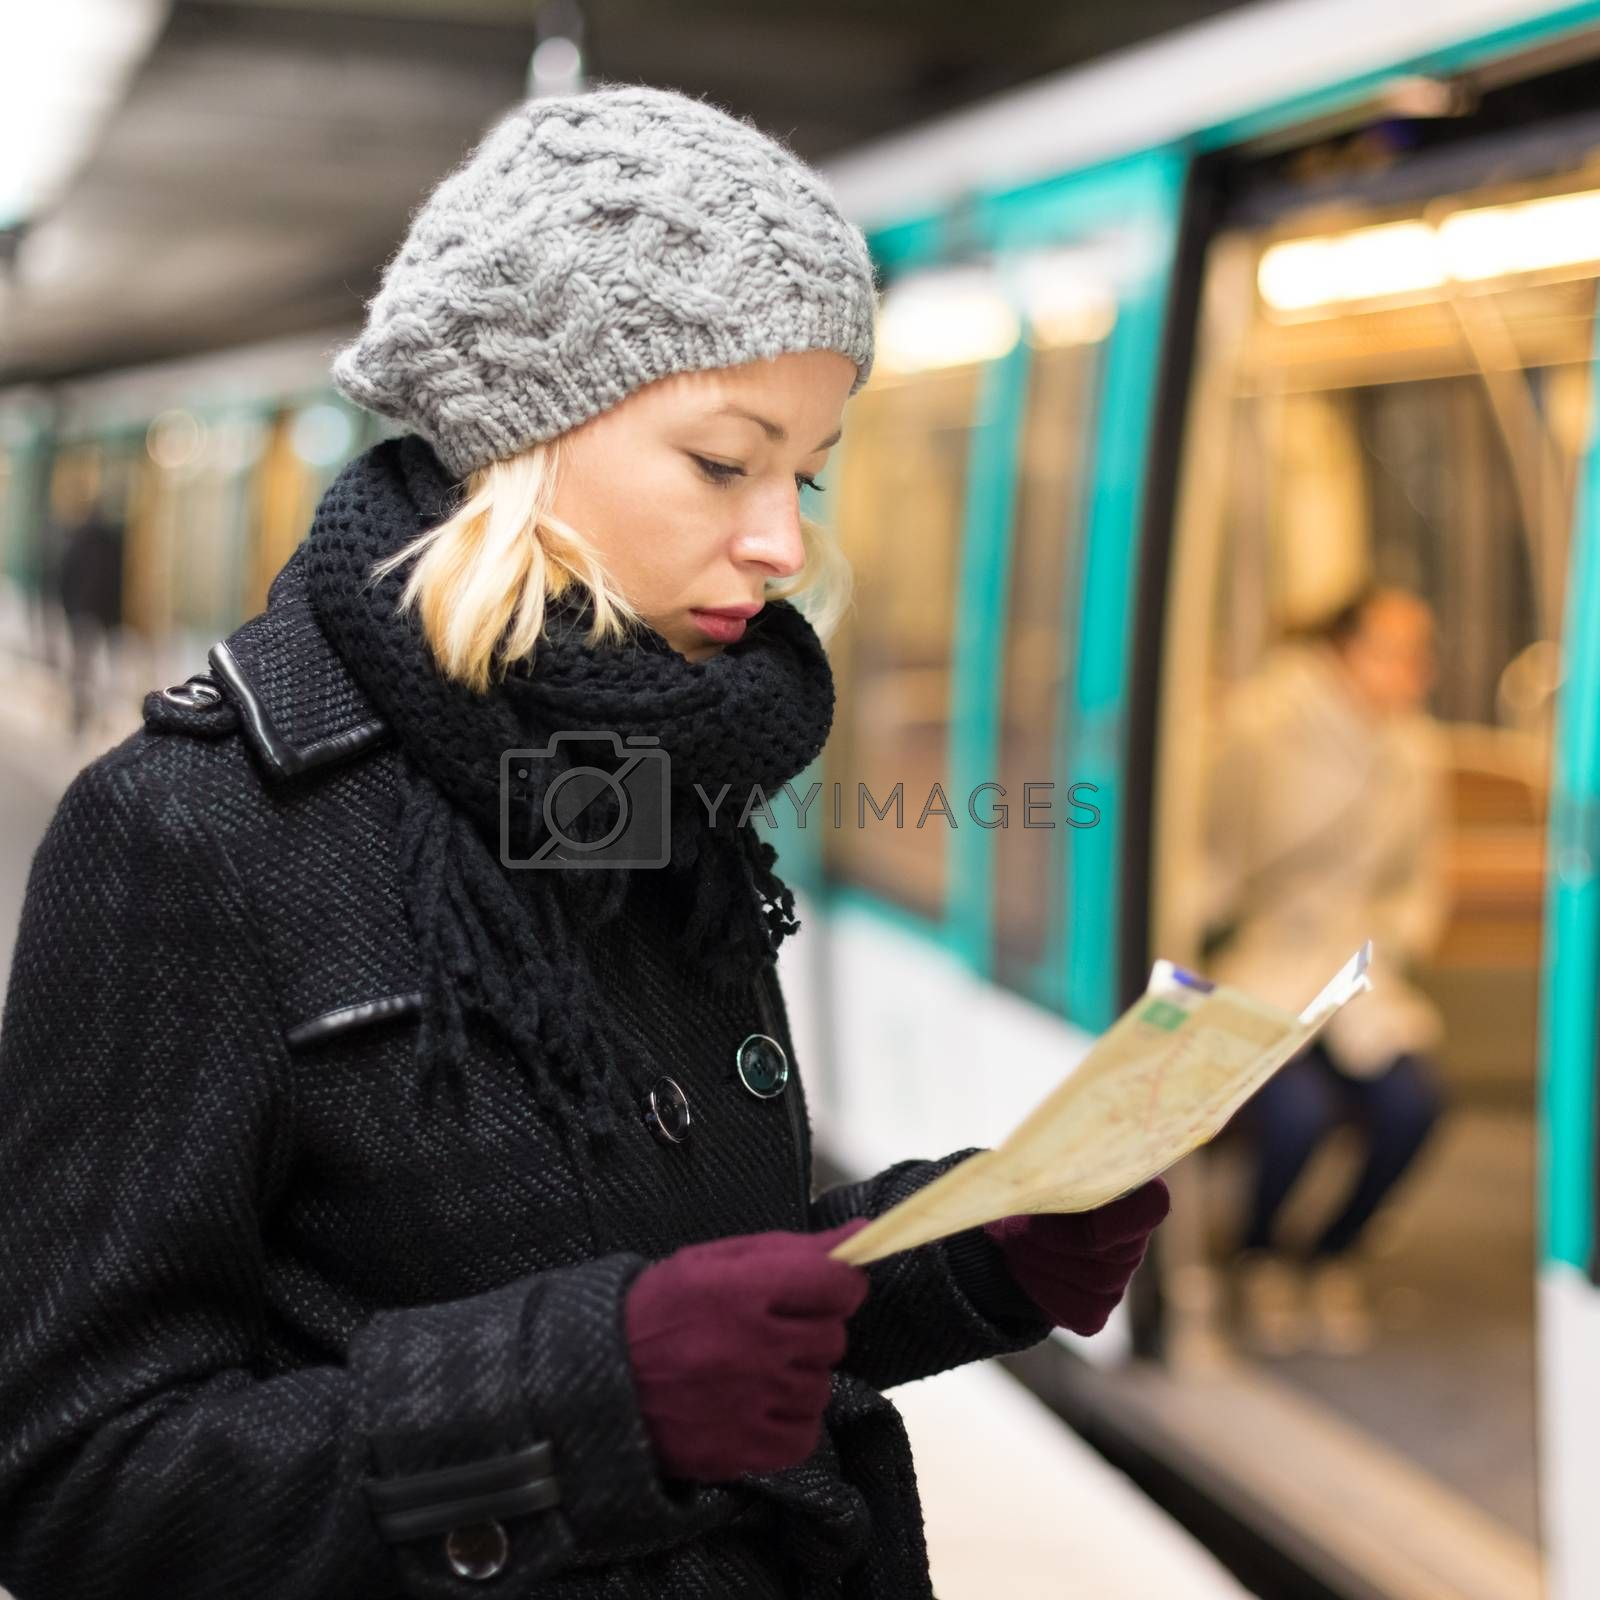 Casually dressed woman wearing winter coat, waiting on a platform for a train to arrive, orientating herself with public transport map. Urban transport.